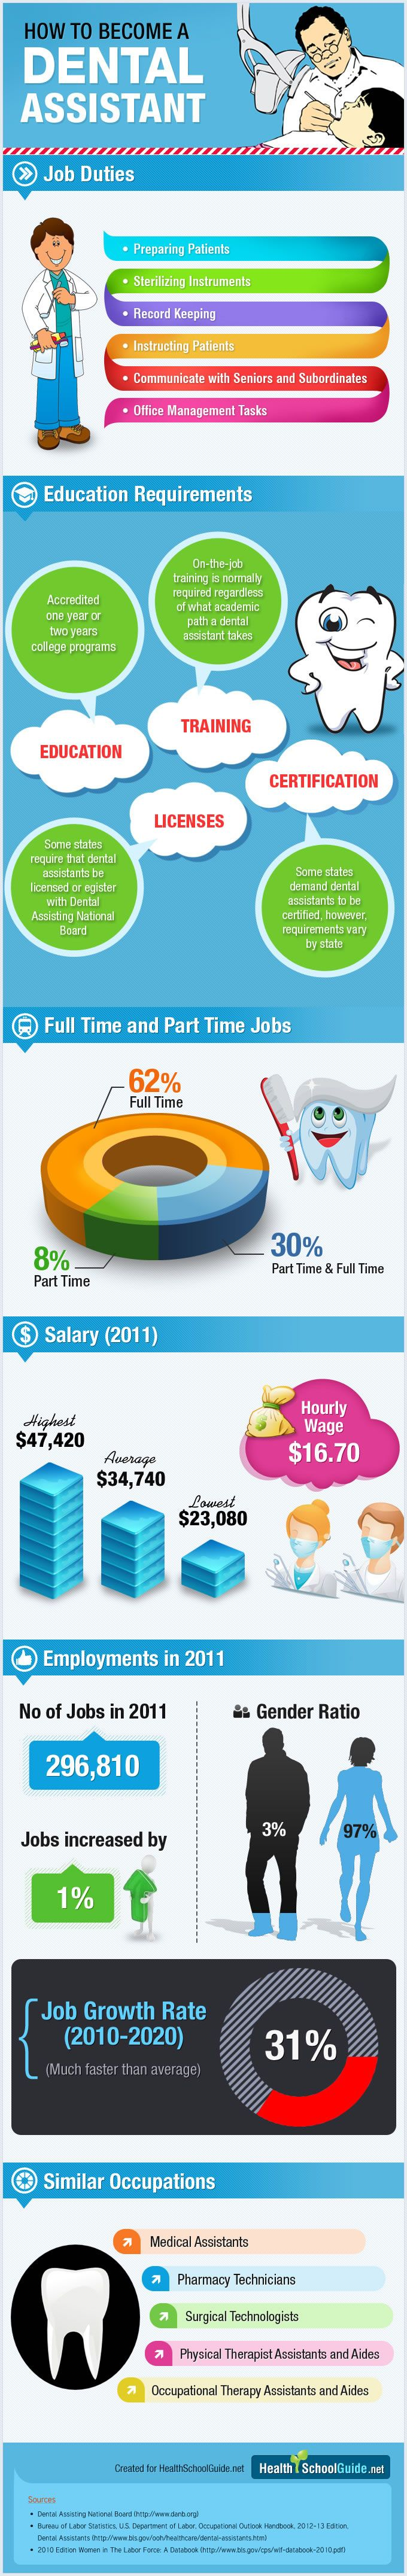 Dental Hygienist Education and Training Requirements